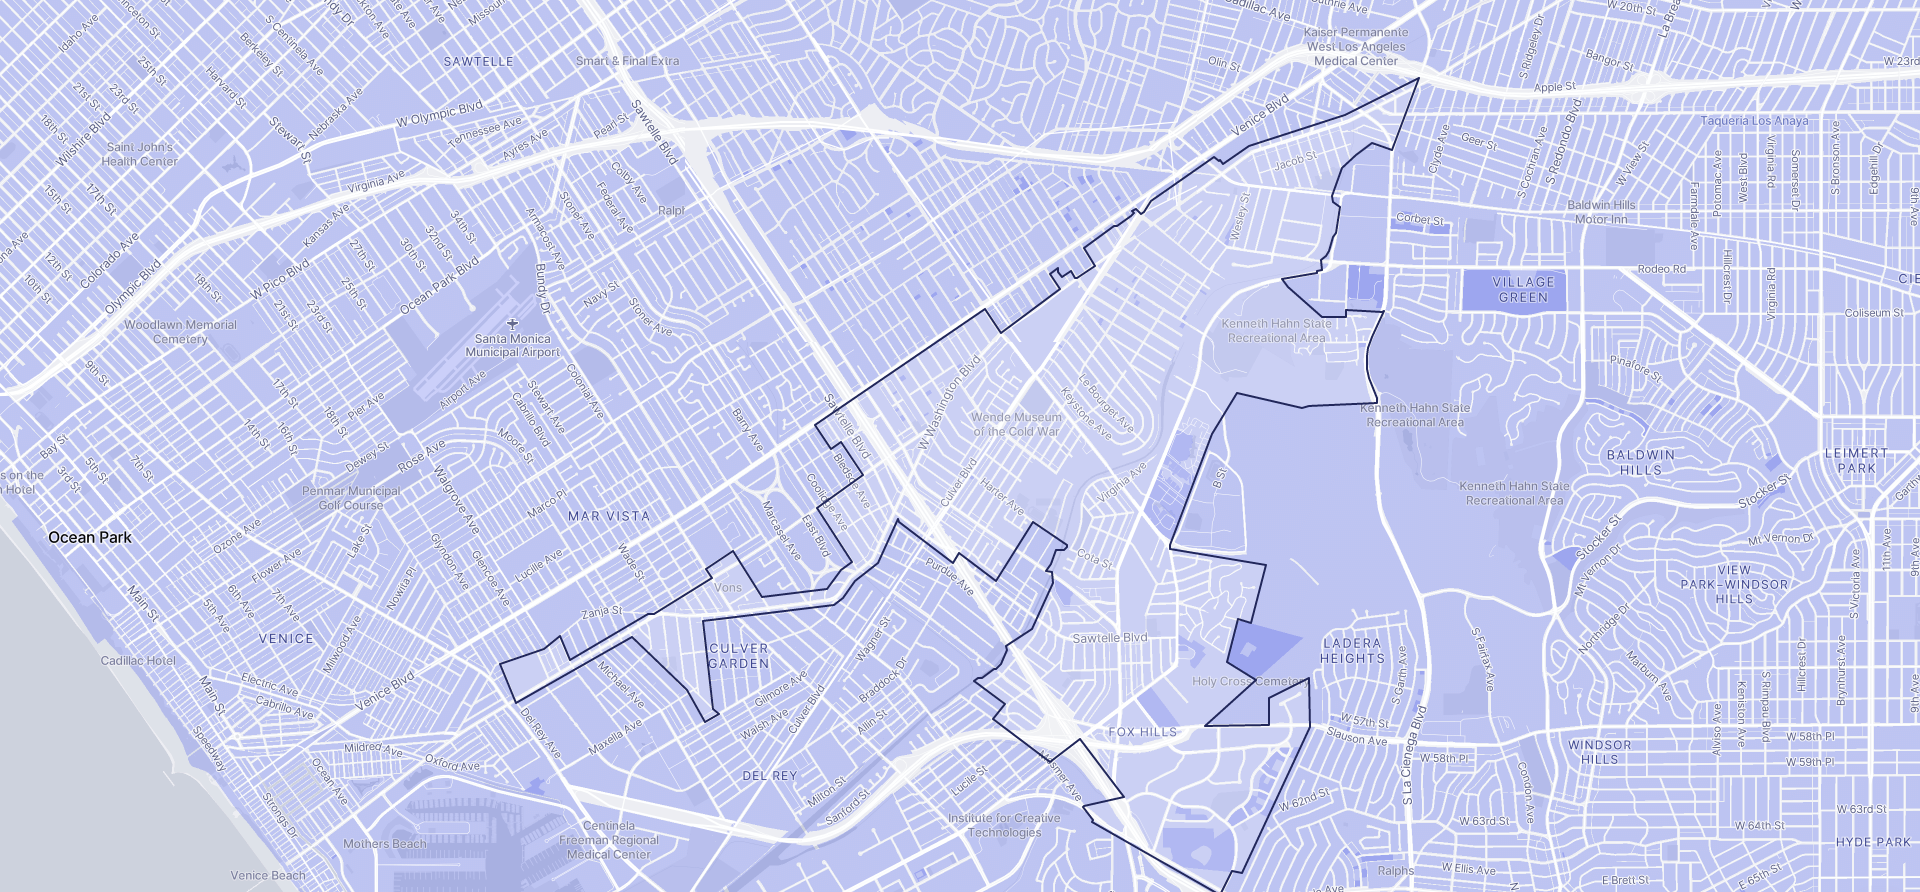 Image of Culver City boundaries on a map.